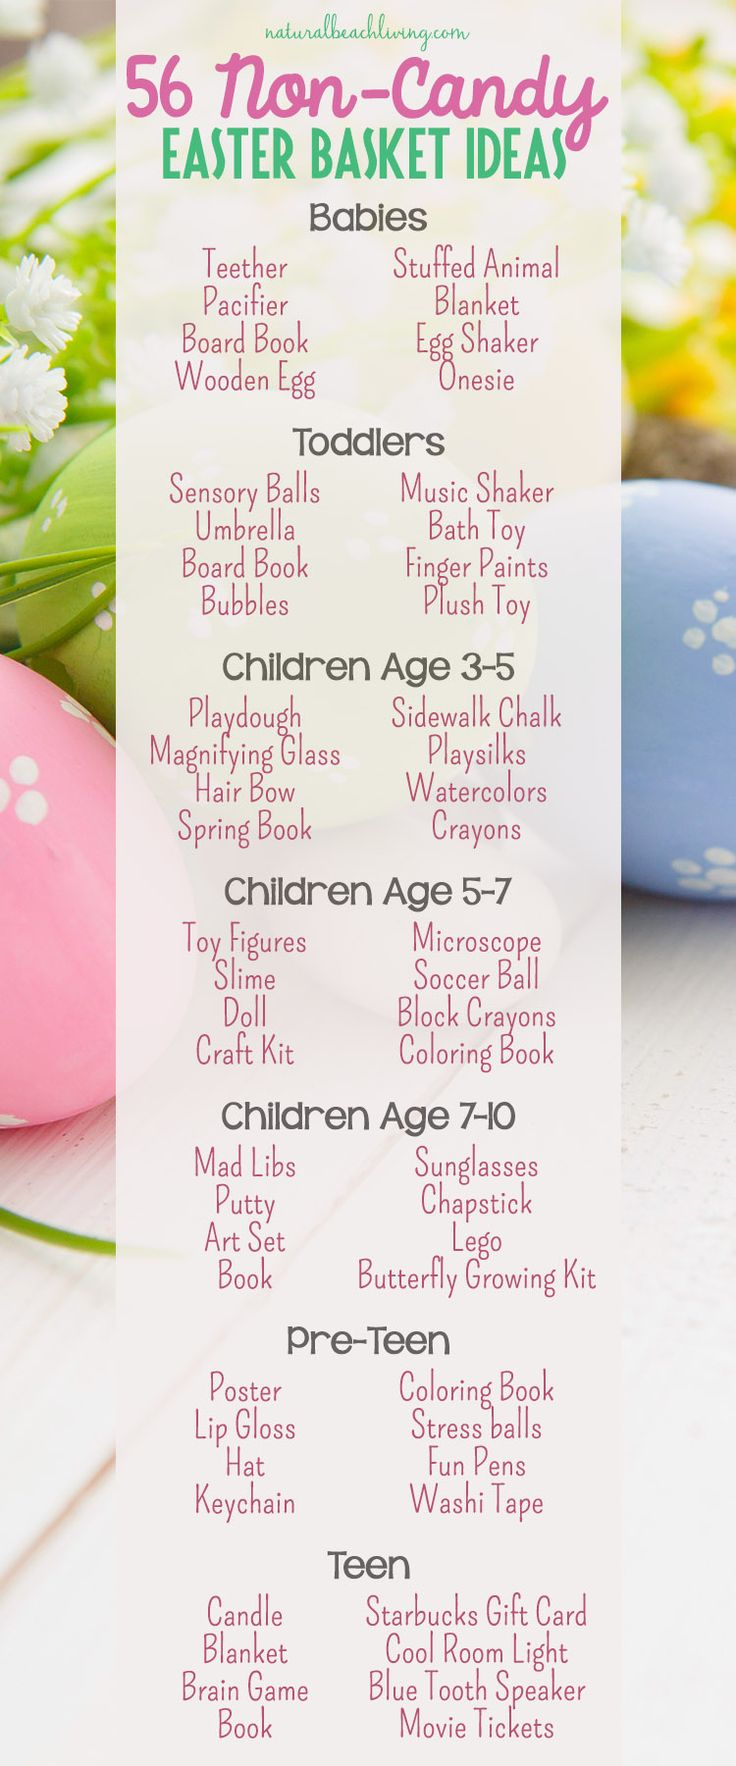 571 best easter activities for kids images on pinterest easter 56 non candy easter basket ideas for kids negle Image collections